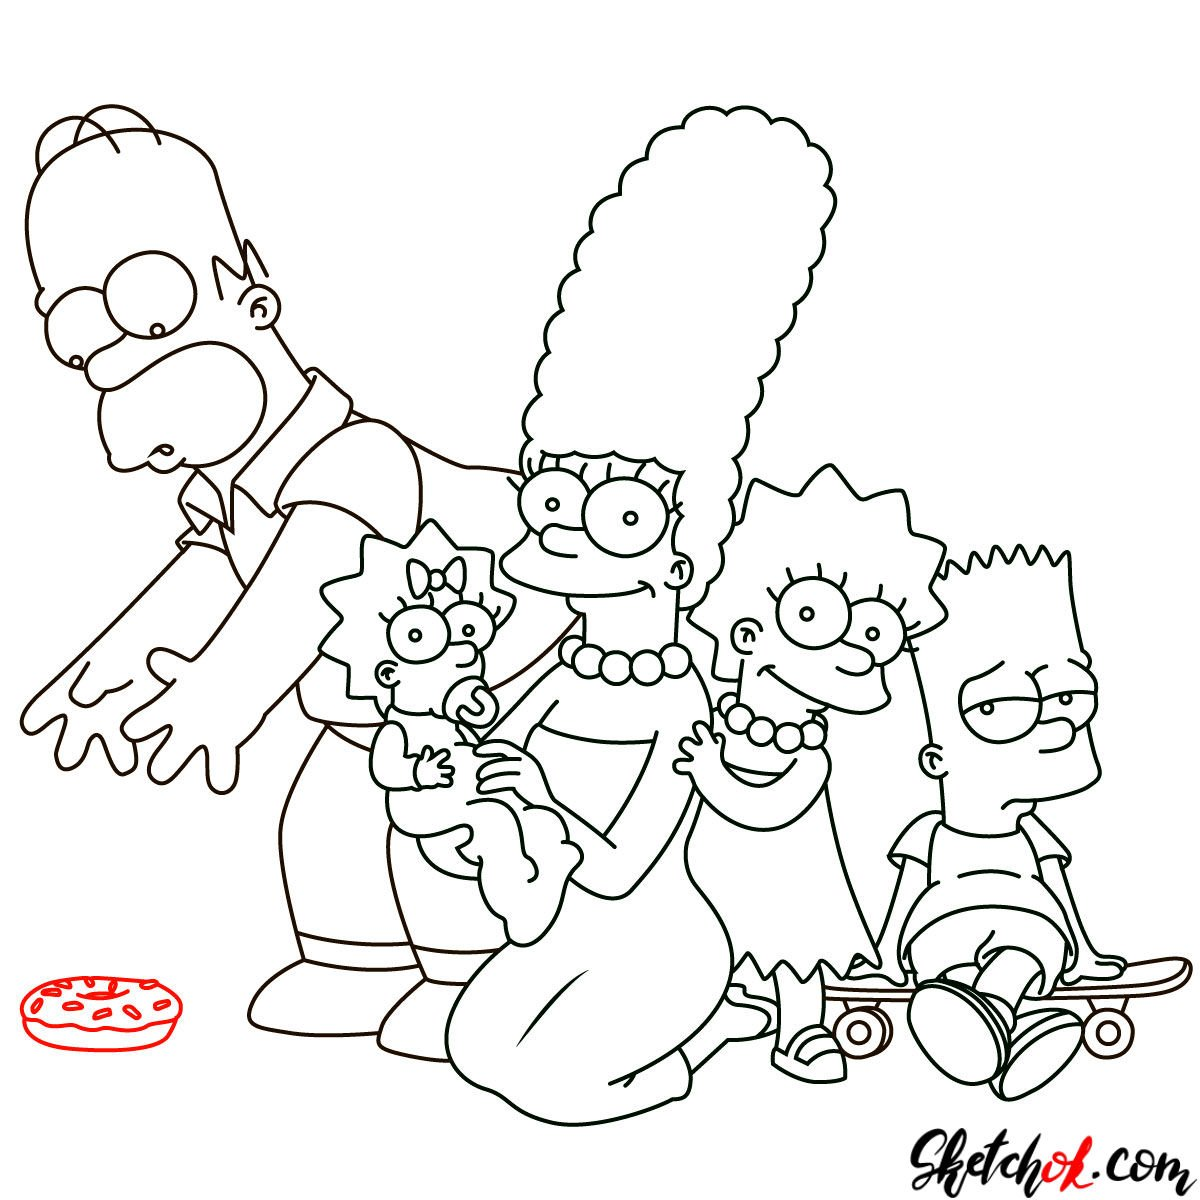 How to draw the Simpsons Family - step 29